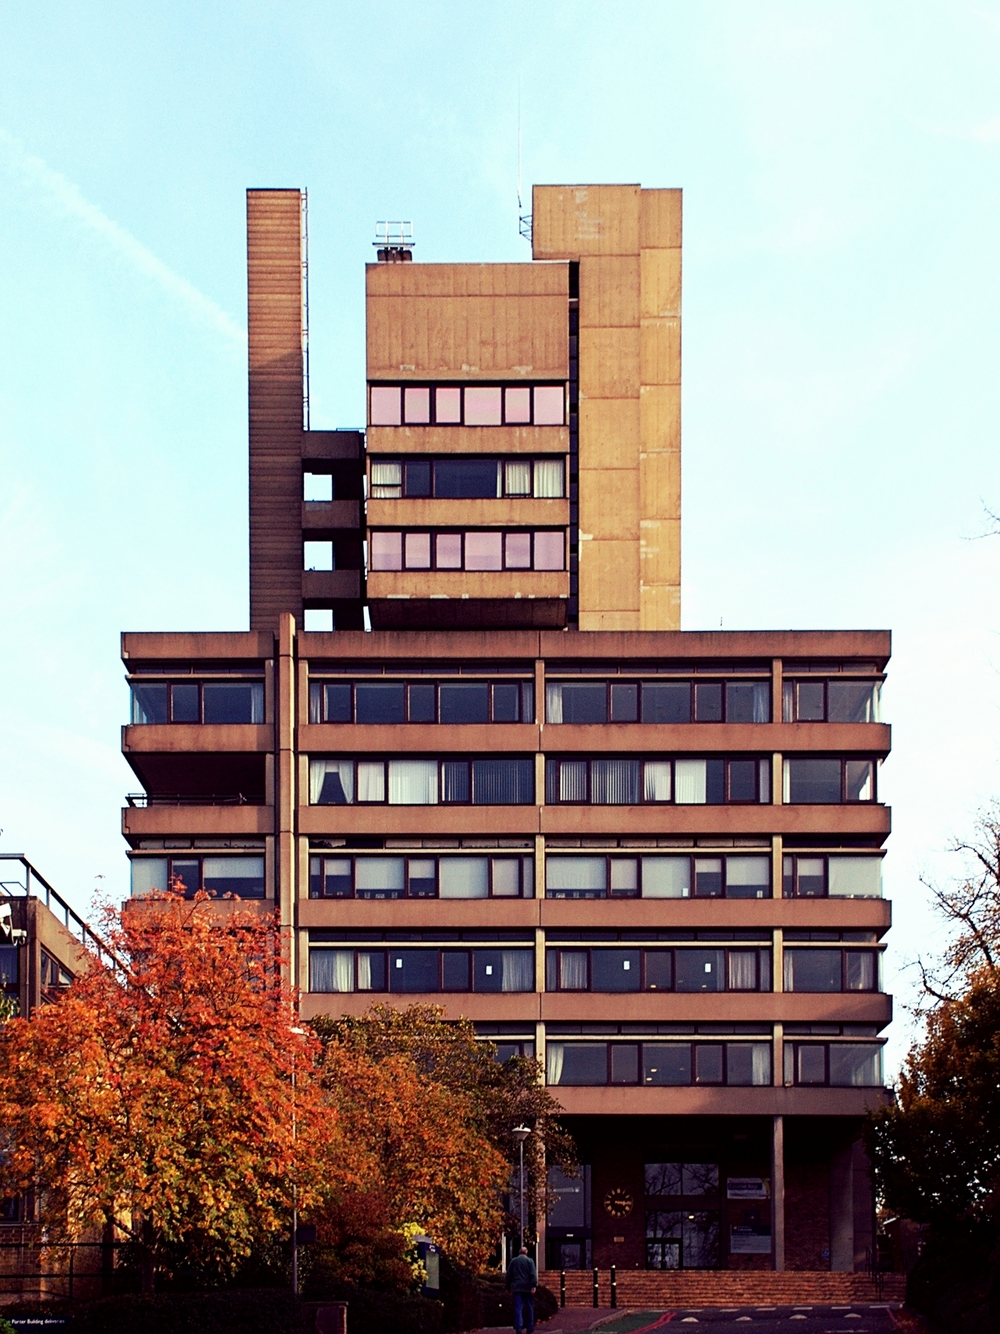 Charles Wilson Building, University of Leicester